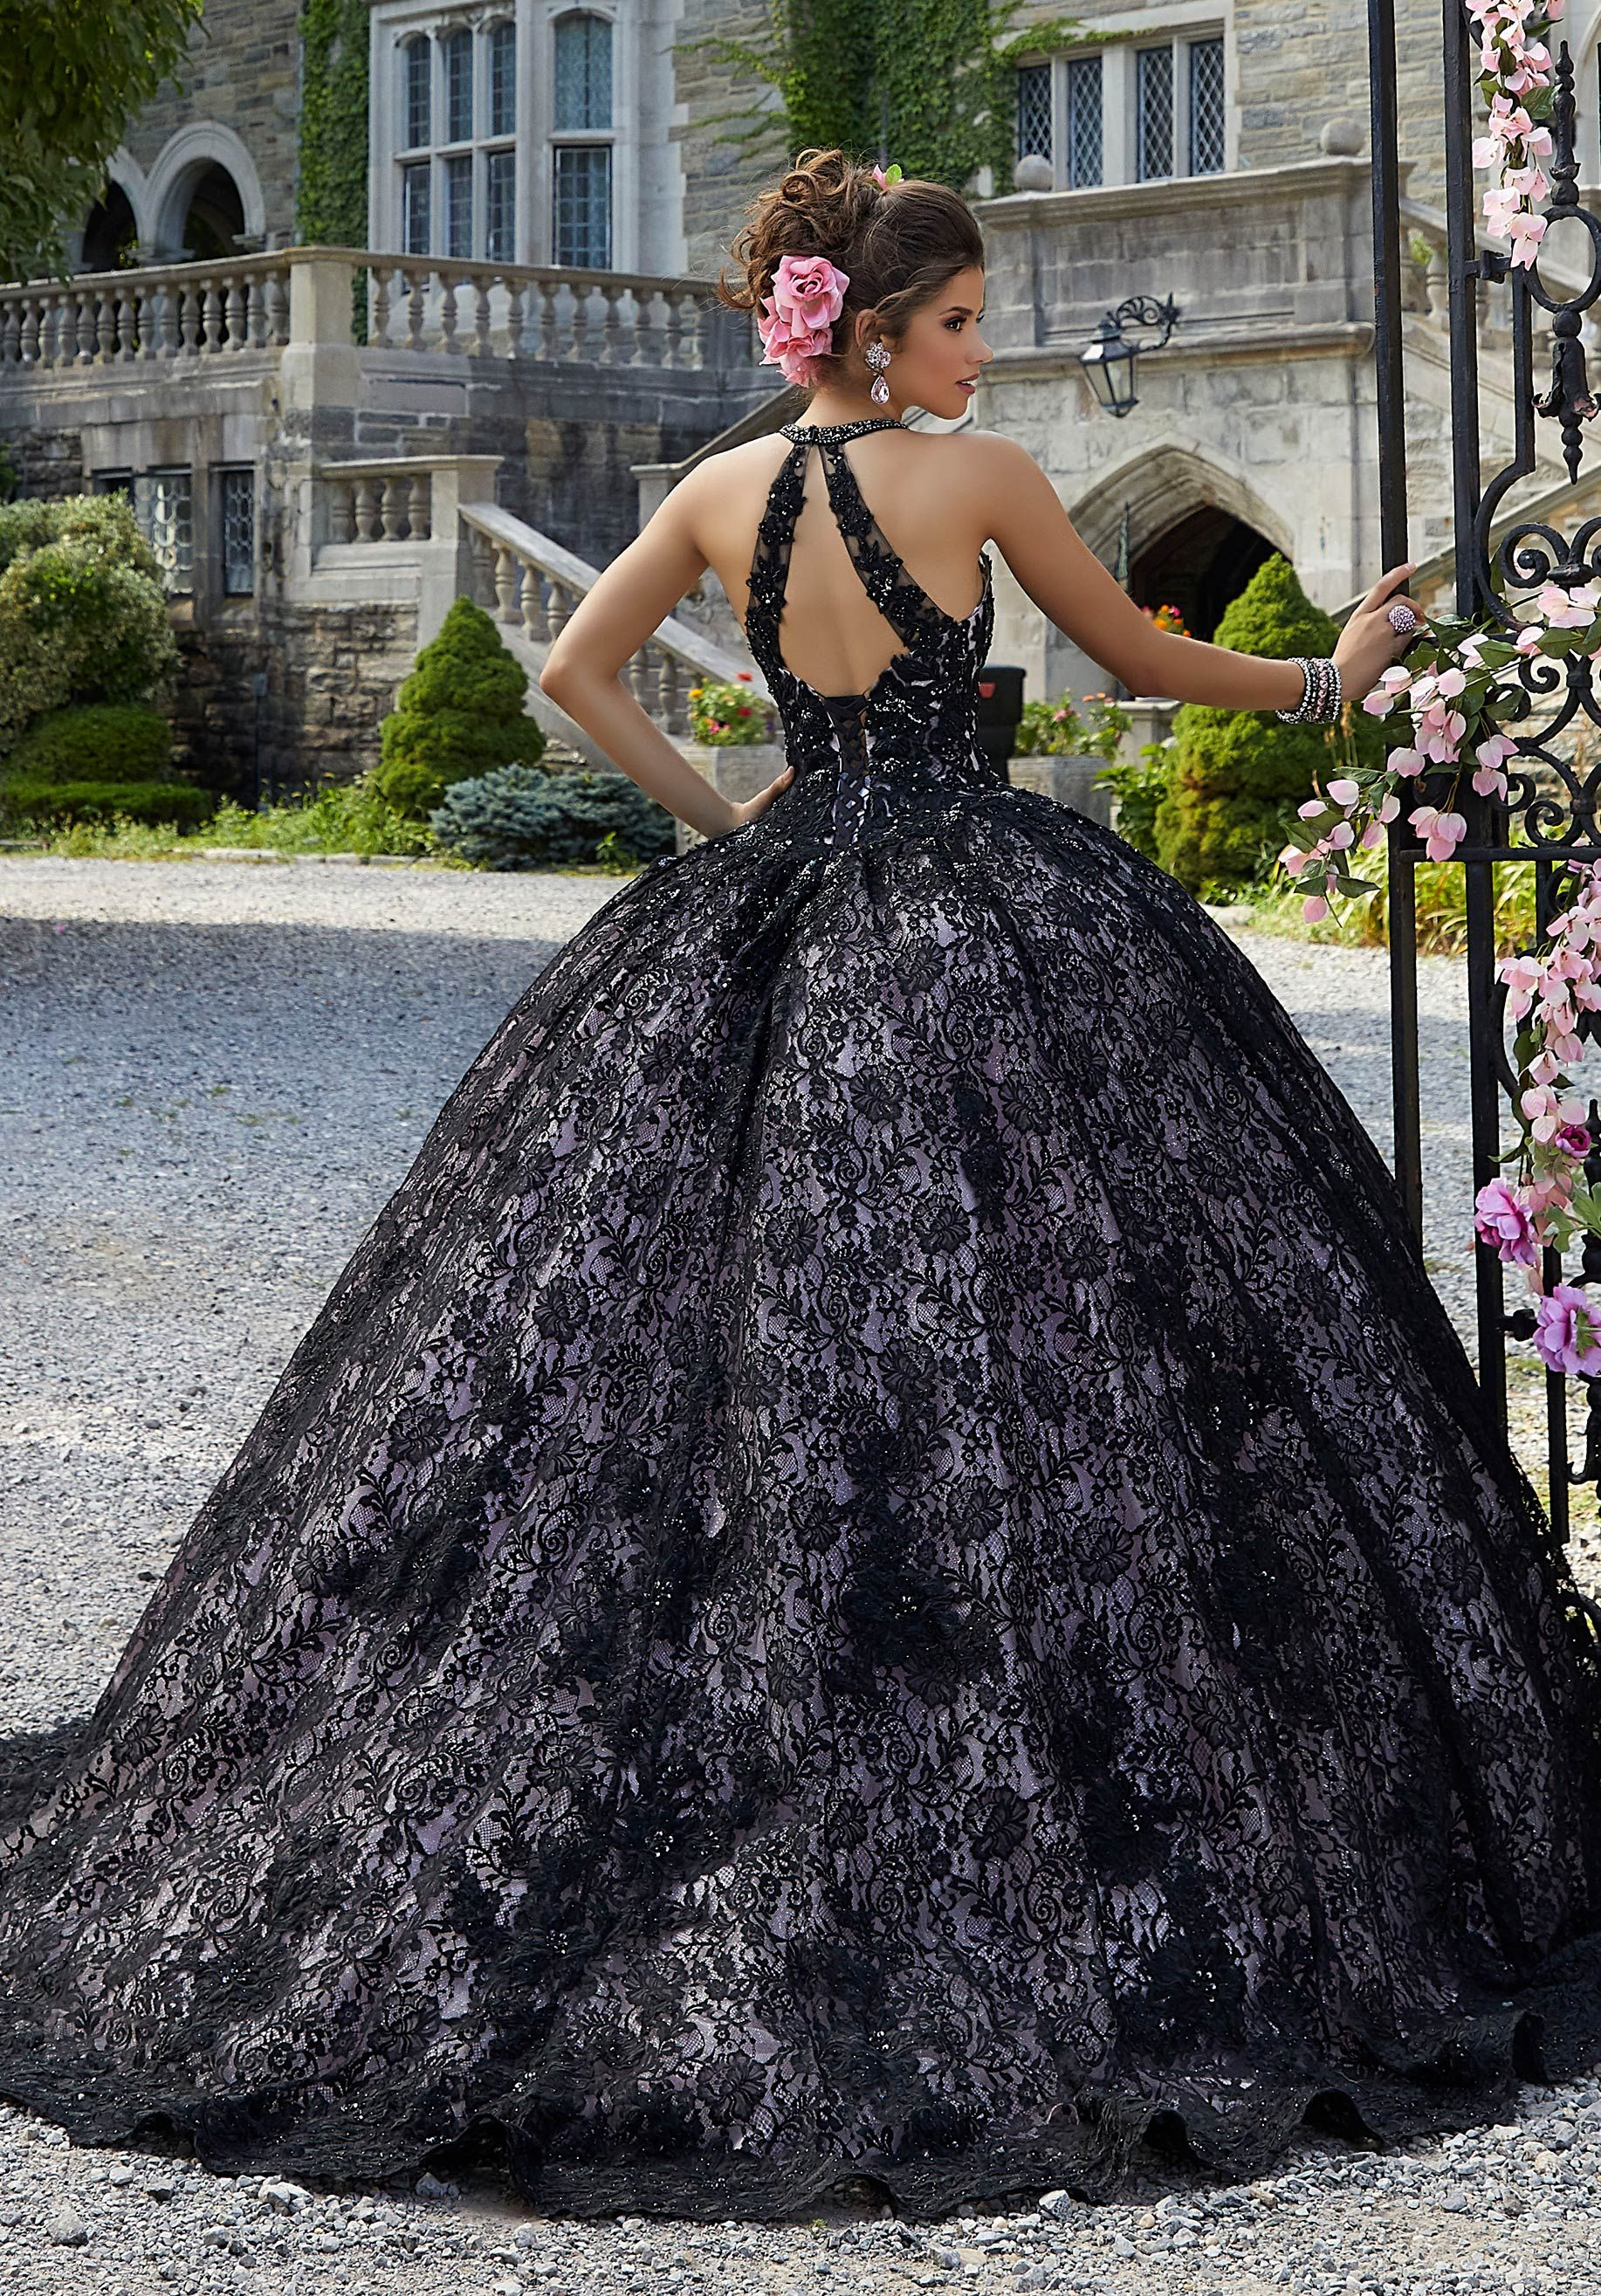 Lace And Sparkle Tulle Quinceanera Dress Morilee Style 34026 Quinceanera Dresses Black Quinceanera Dresses Sparkle Tulle Skirt [ 2630 x 1834 Pixel ]